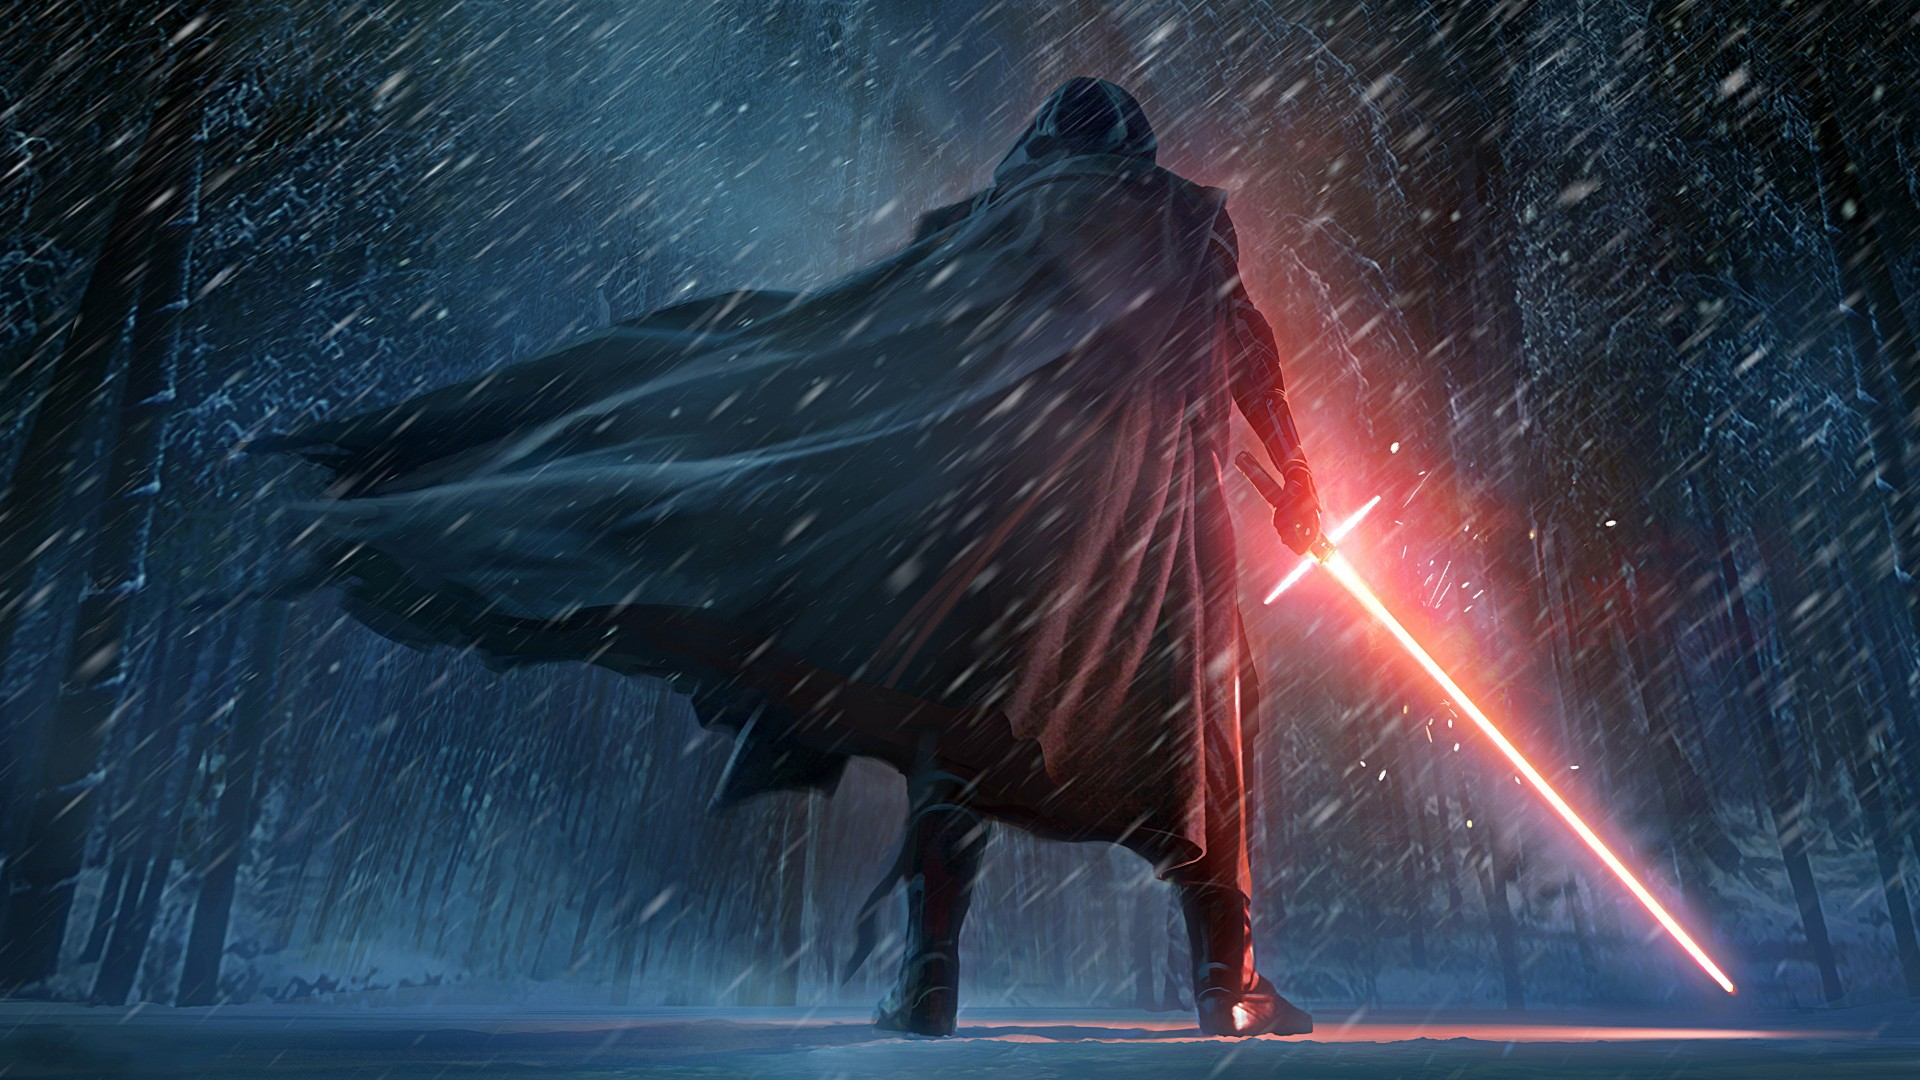 Download Cute Wallpapers For Android Kylo Ren Star Wars The Force Awakens Artwork Wallpapers